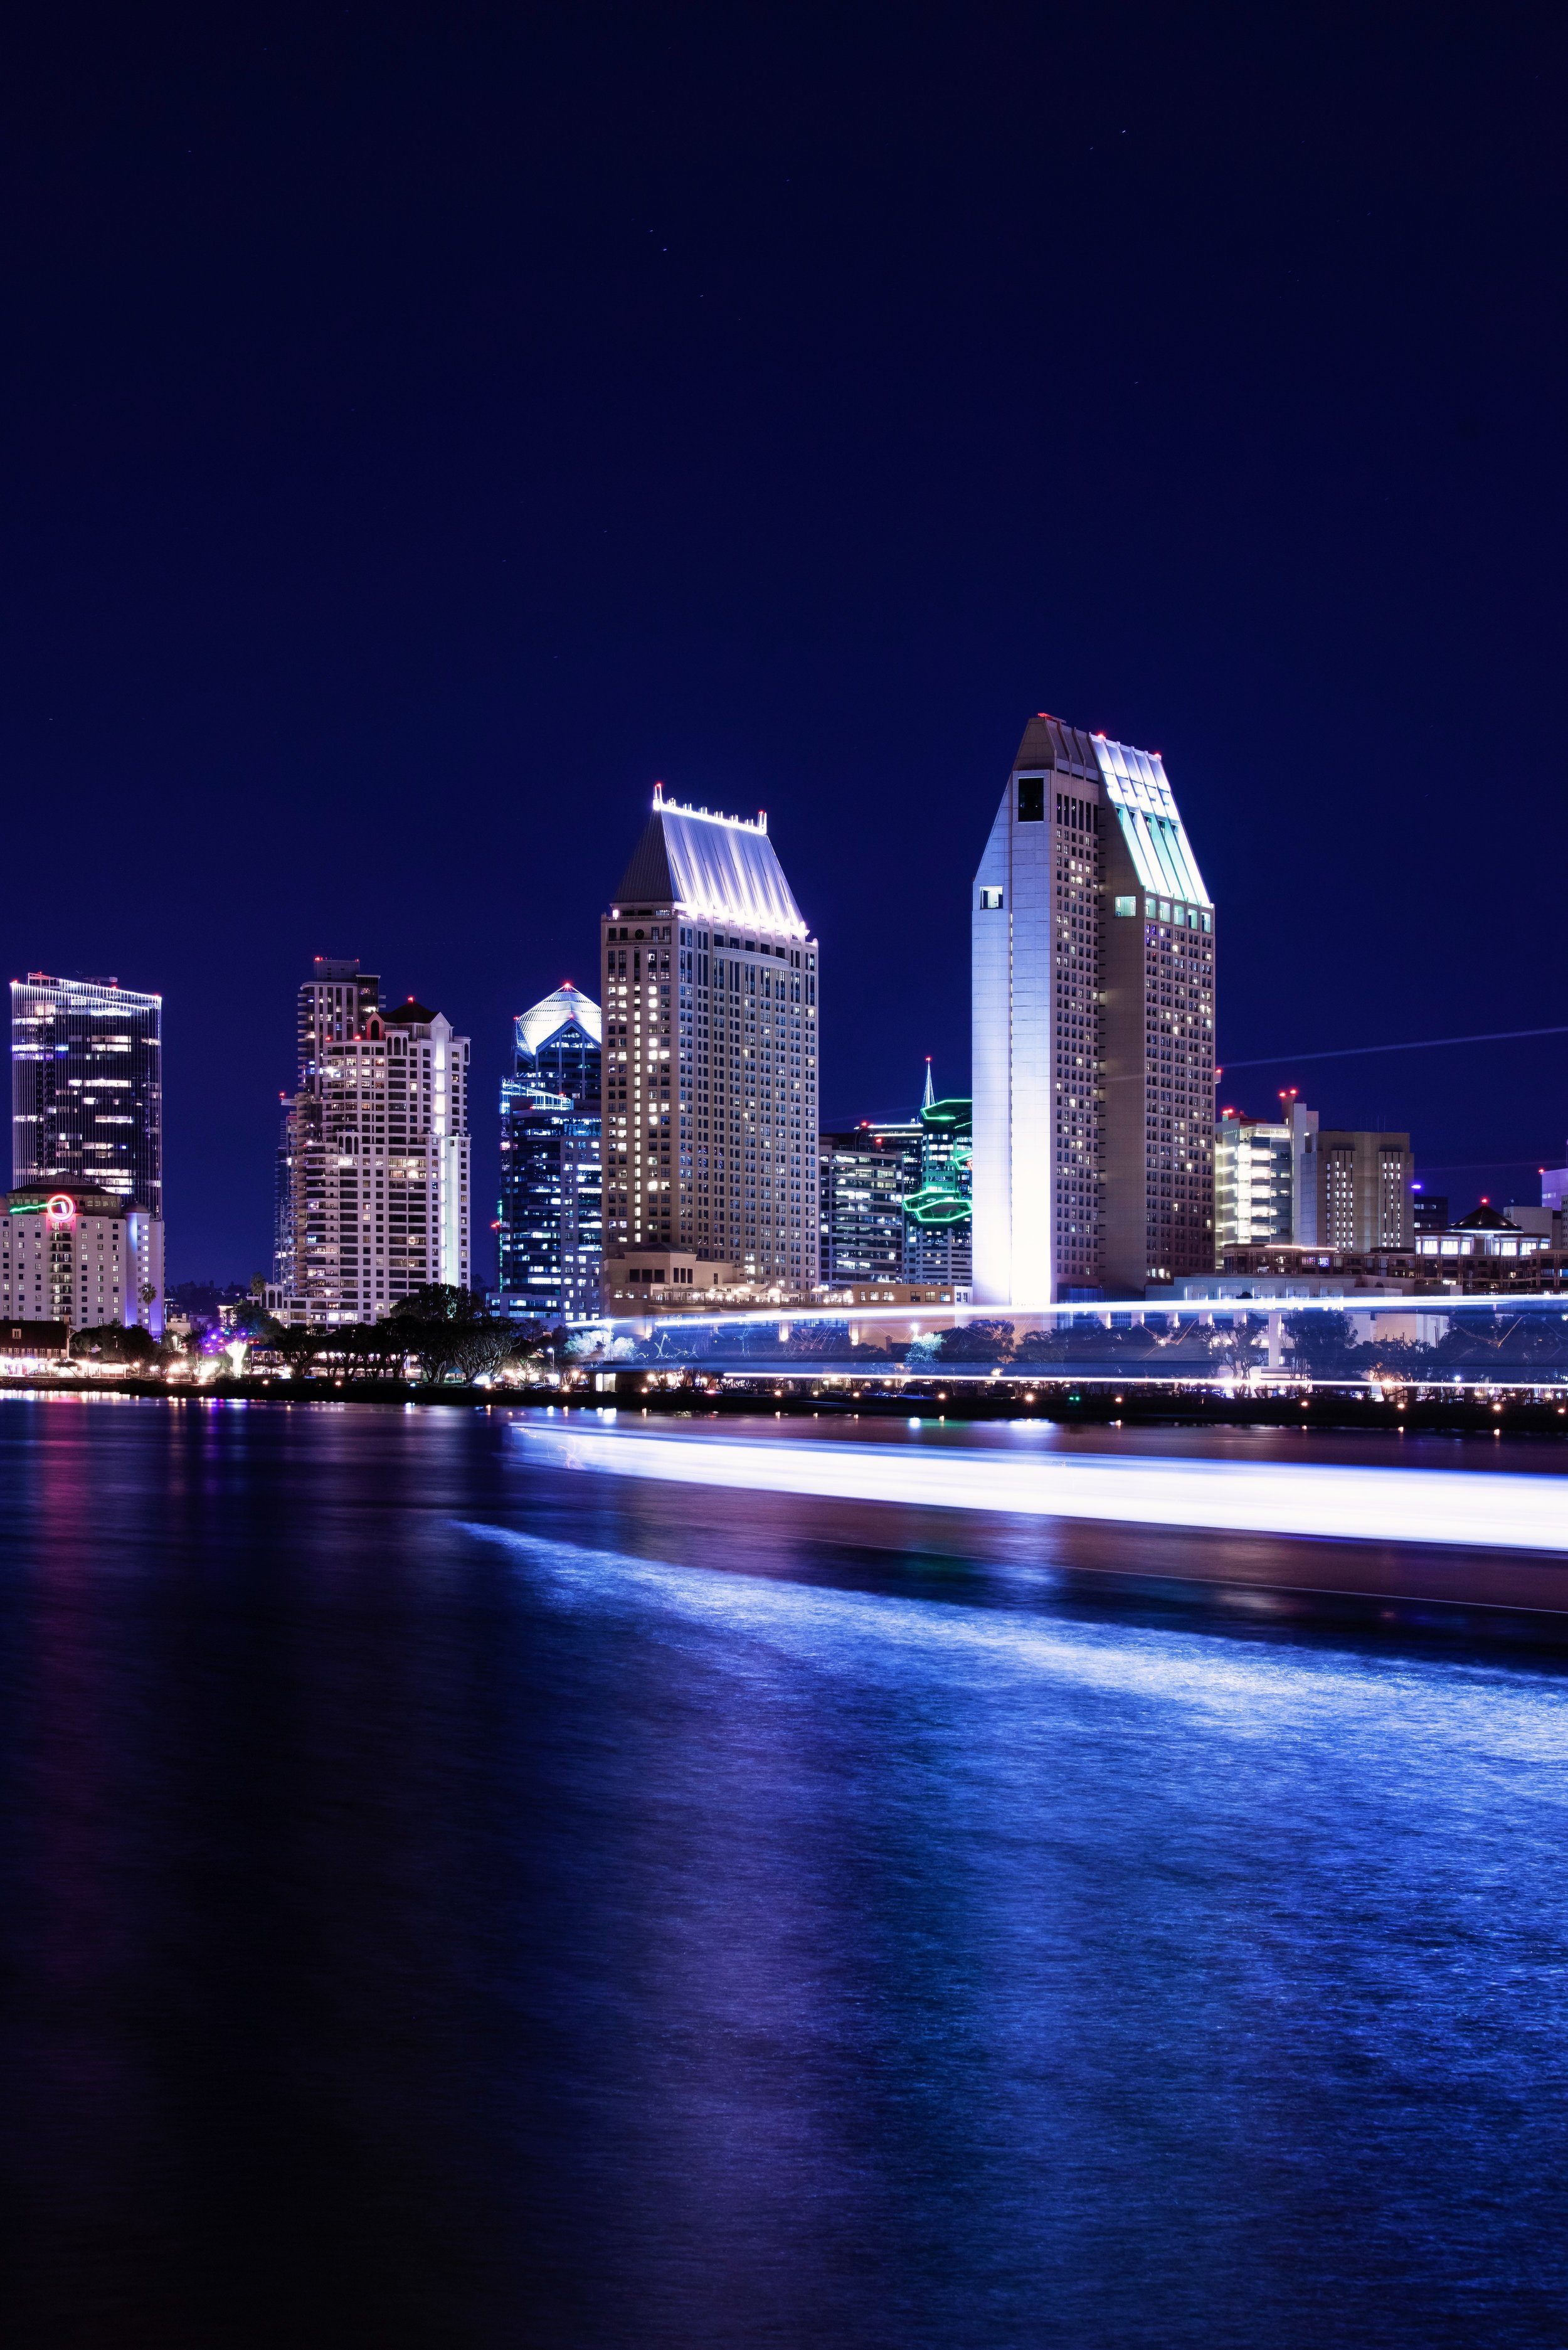 Scenic San Diego City Tour - Discover the sun-drenched attractions of San Diego on this 4-hour city tour covering the city's top neighborhoods, historic sites and parks.Over the course of your trip, you'll check out the museums of Balboa Park, admire the historic architecture of the Gaslamp Quarter and Old Town and explore the mansions and beautiful coast in La Jolla, plus much more.It's a great chance to pack in lots of landmarks in a short period of time. This San Diego sightseeing tour also includes round-trip hotel transport, a guide and optional upgrades.